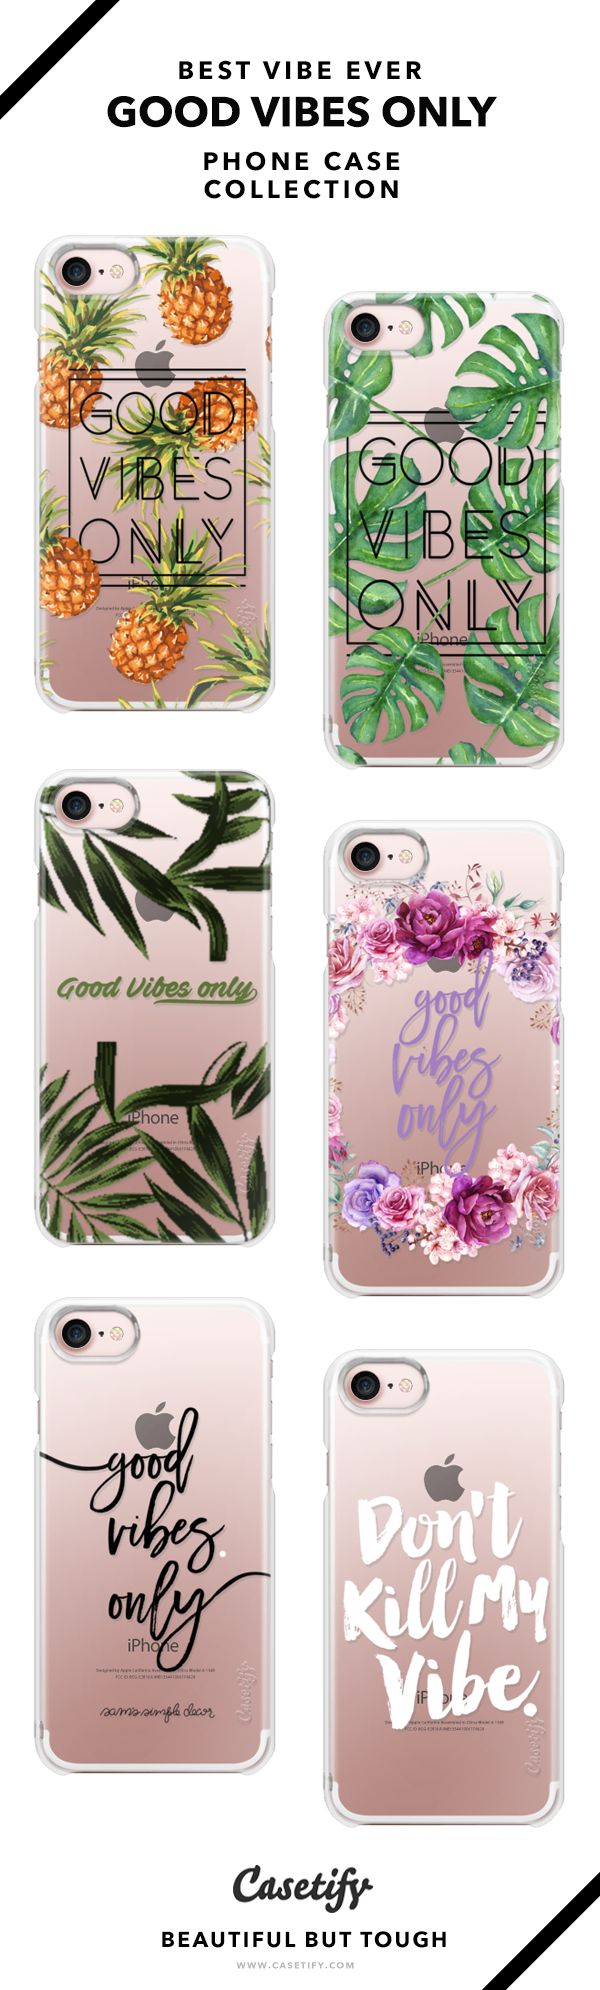 """""""GOOD VIBES ONLY PLEASE!"""" 